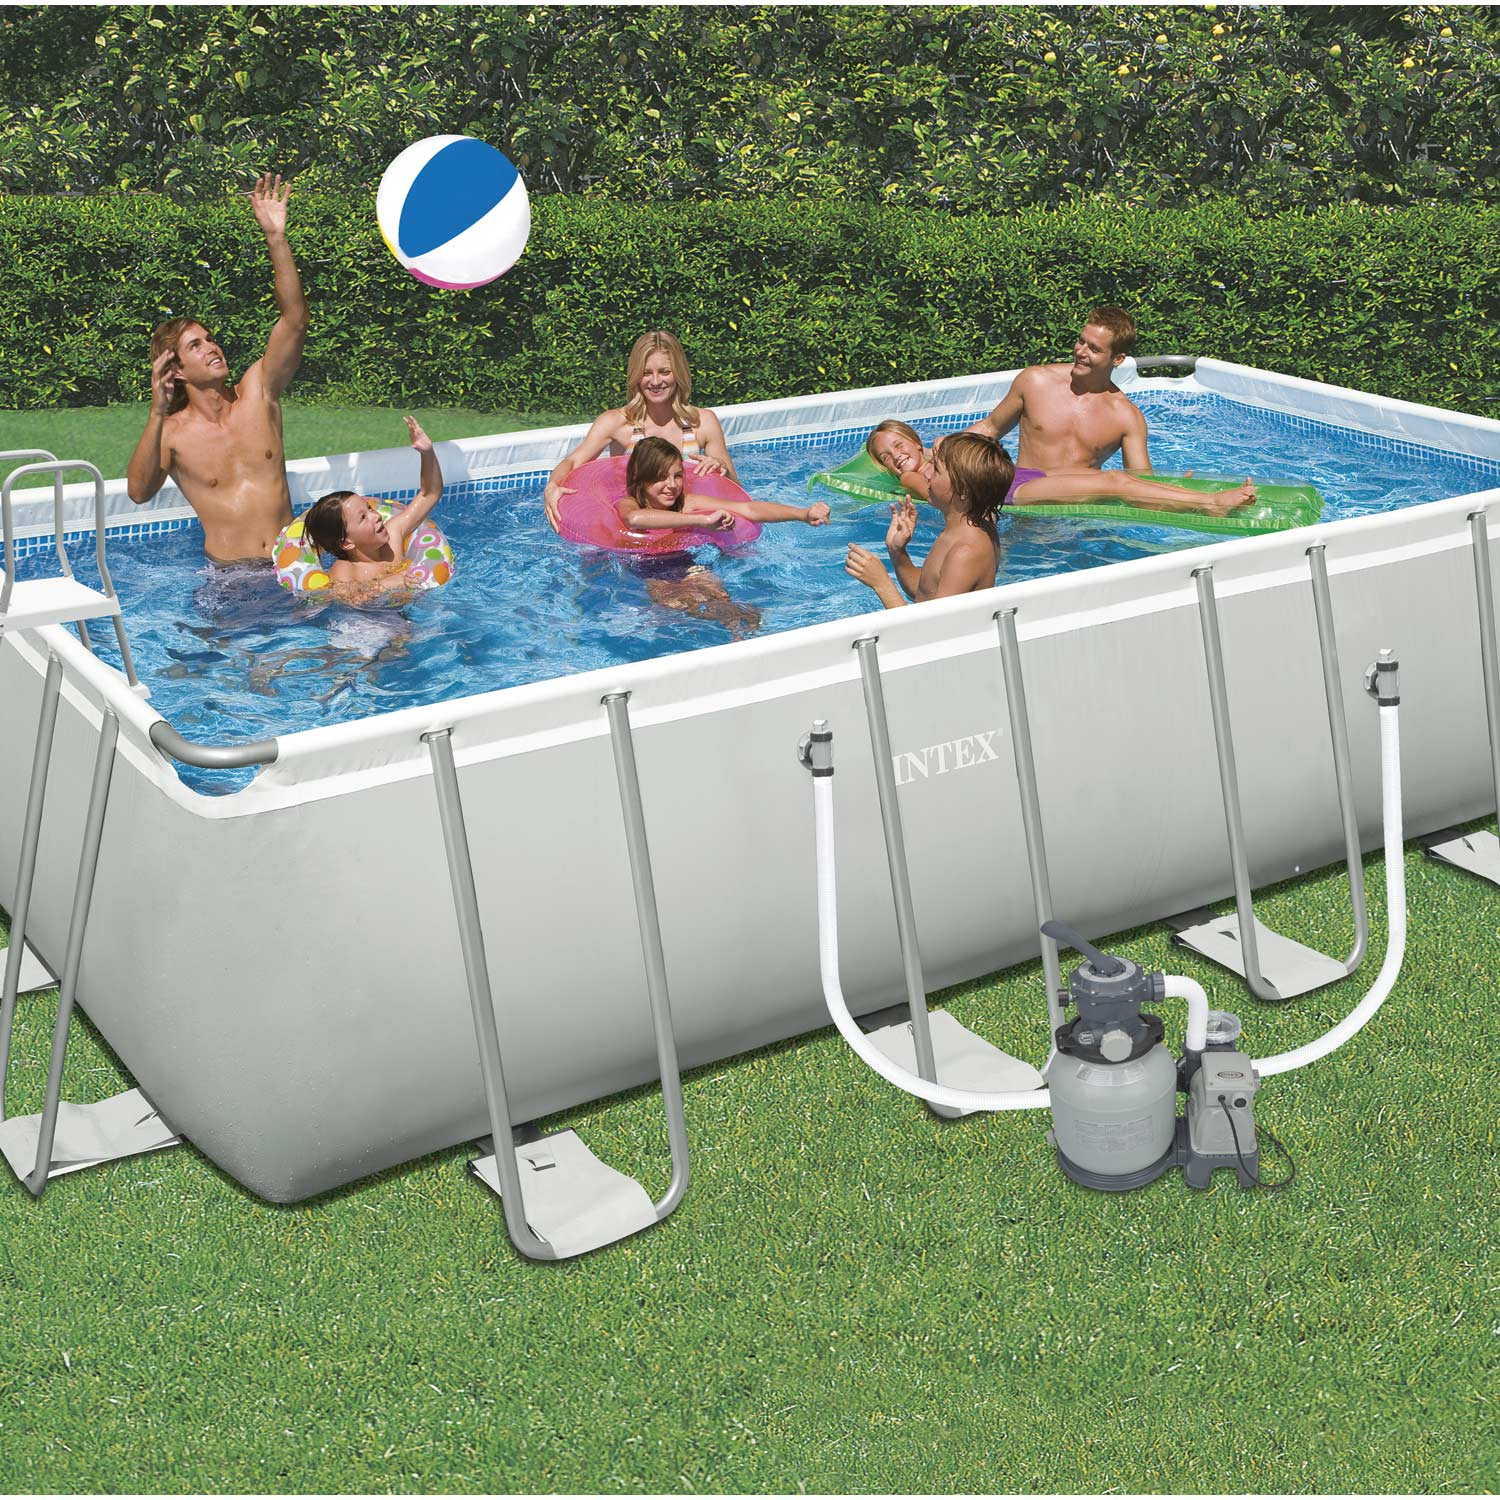 Piscine hors sol autoportante tubulaire ultra silver intex for Piscine hors sol reglementation